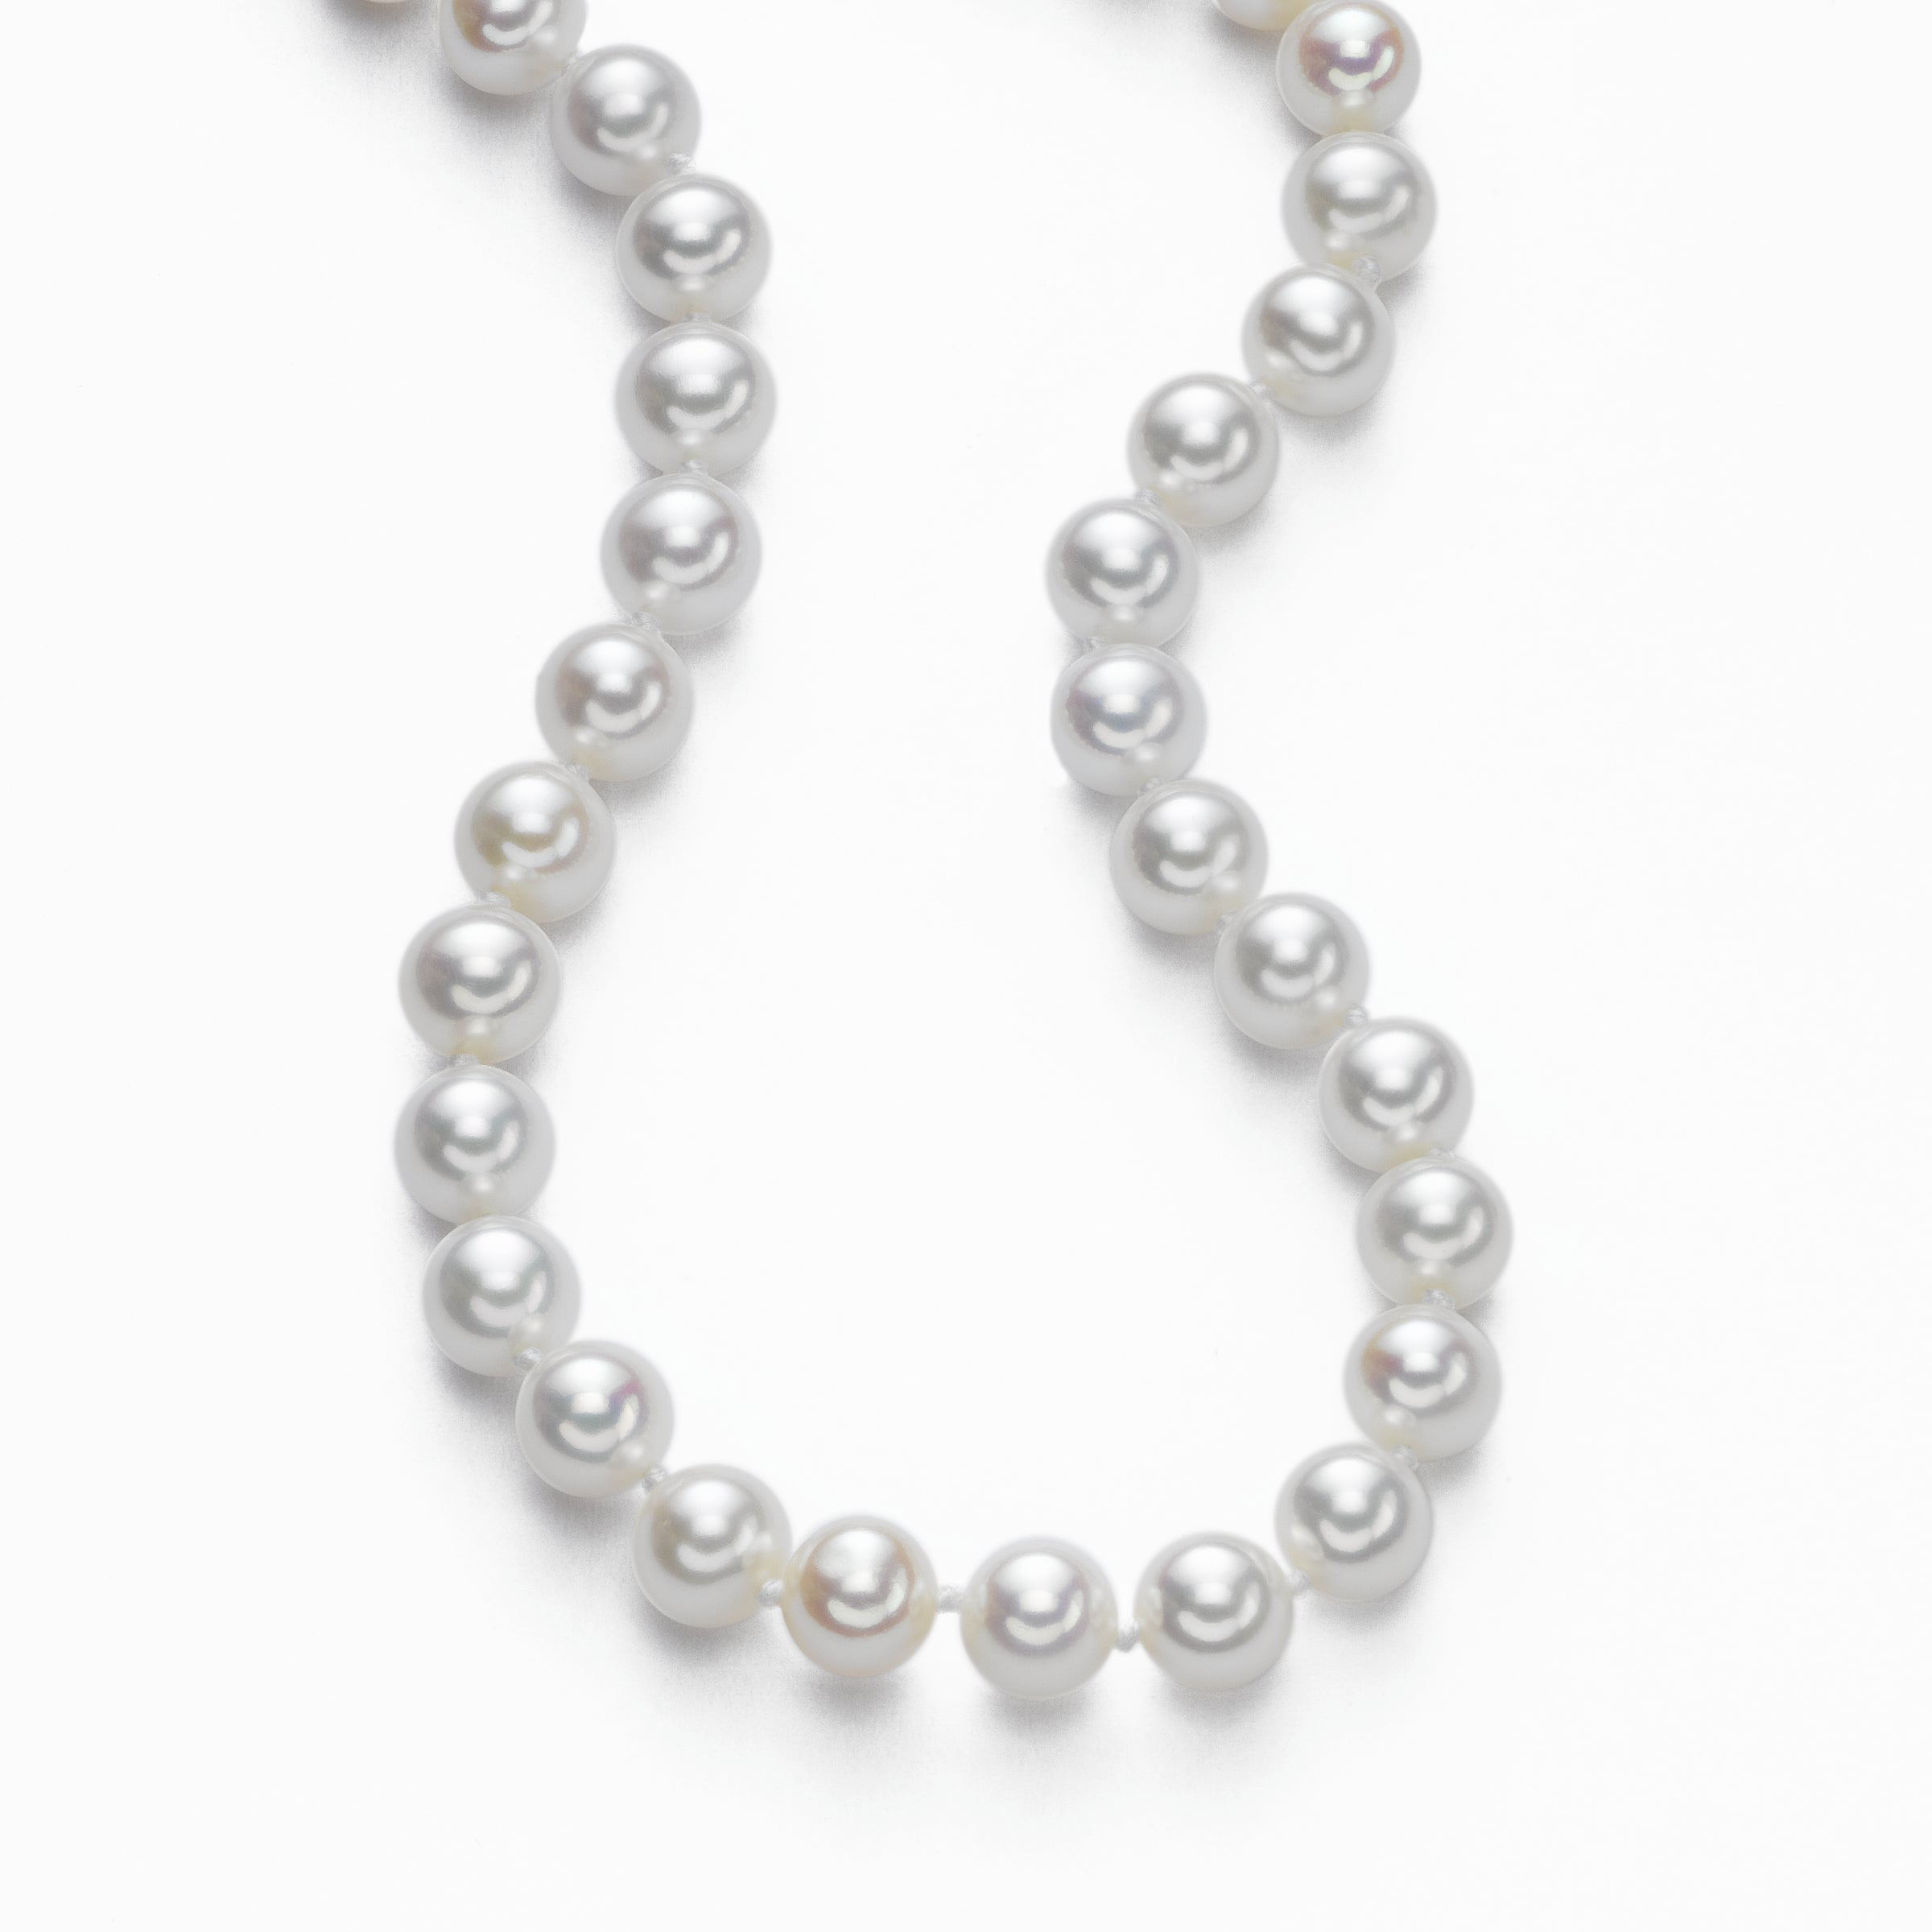 Japanese 'Akoya' Saltwater Cultured Pearls, 6.5 x 6 MM, 14K White Gold